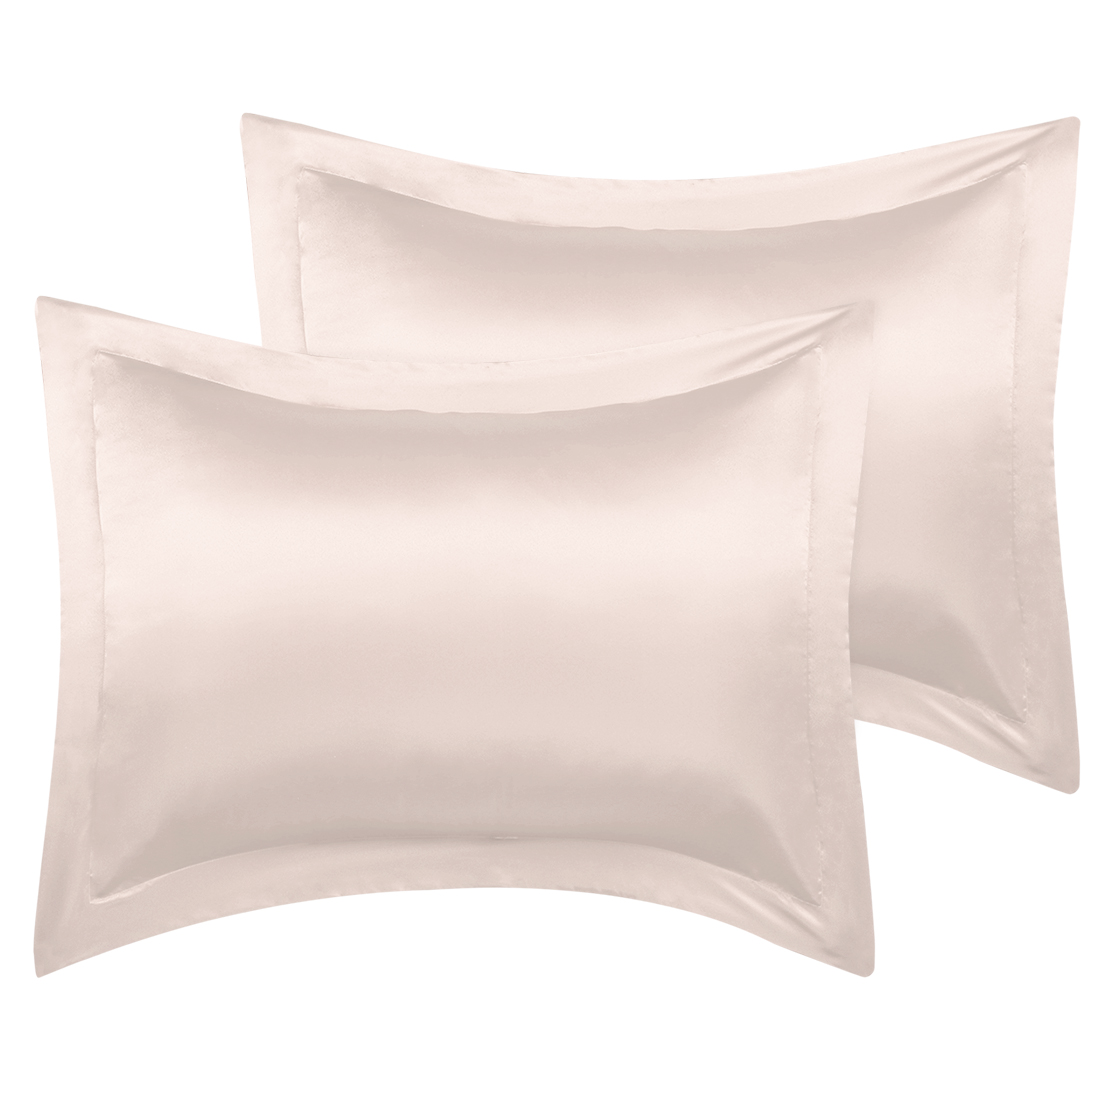 2 Pcs Light Tan Pillow Shams Satin Pillow Cases King Oxford Pillowcases